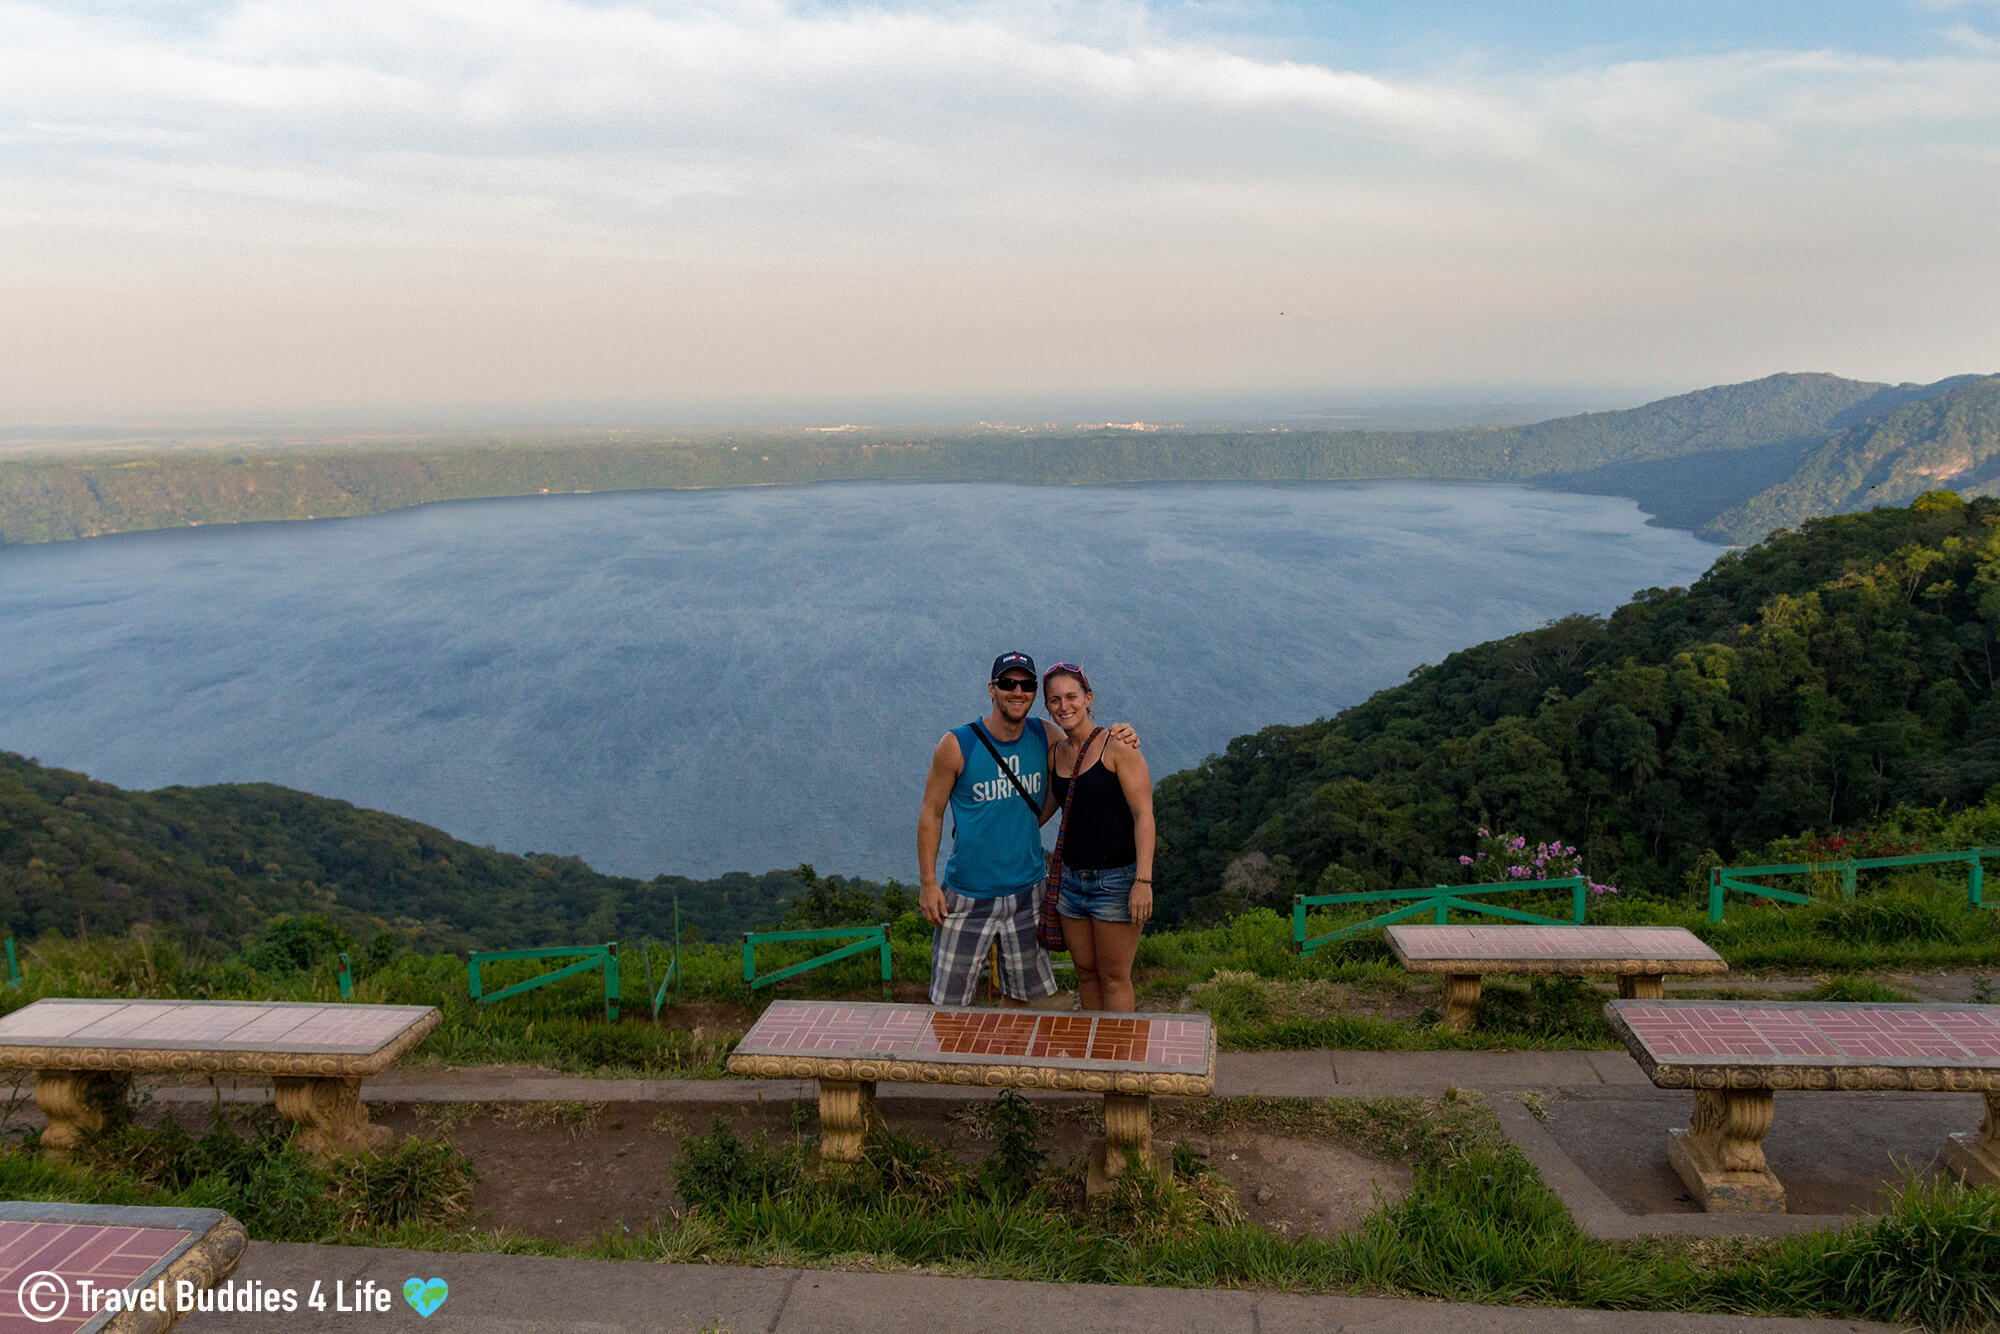 Joey And Ali Standing At The Overview Of The Laguna Apoyo A Unique Scuba Diving Spot In Nicaragua, Central America